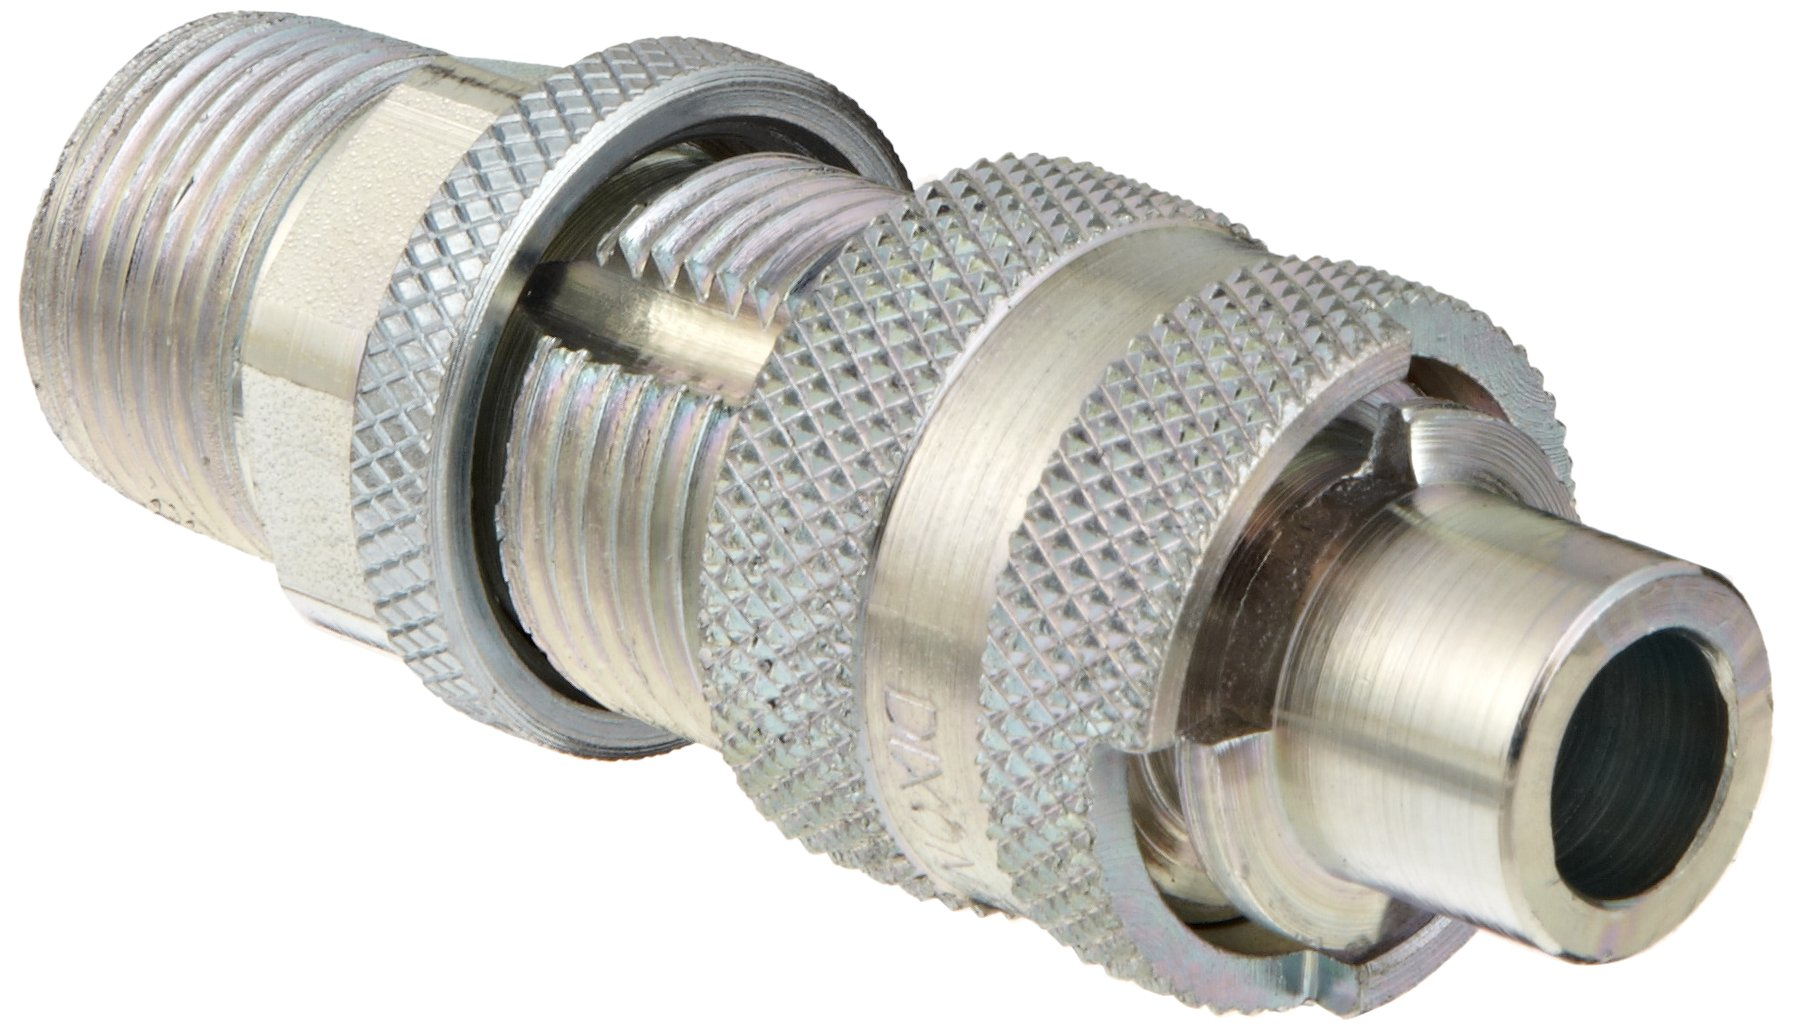 Dixon QM88 Plated Steel Dix-Lock Quick Acting Air Hose Fitting, 1/2'' Male Locking Head x 3/4'' NPT Male